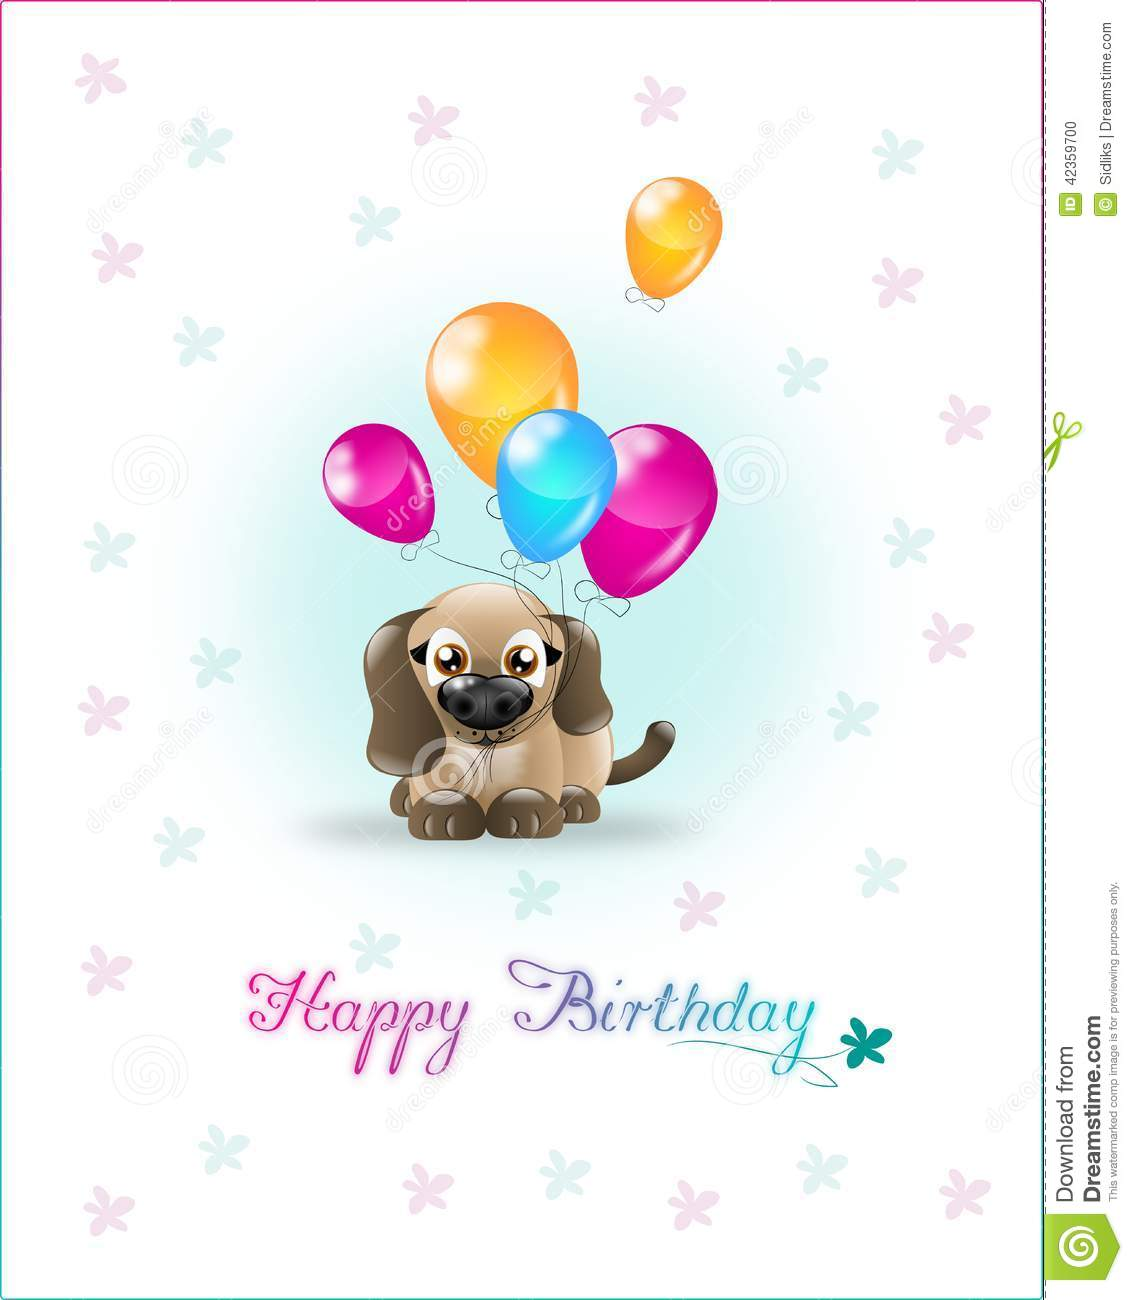 Cute Brown Dog With Ballons On Happy Birthday Card